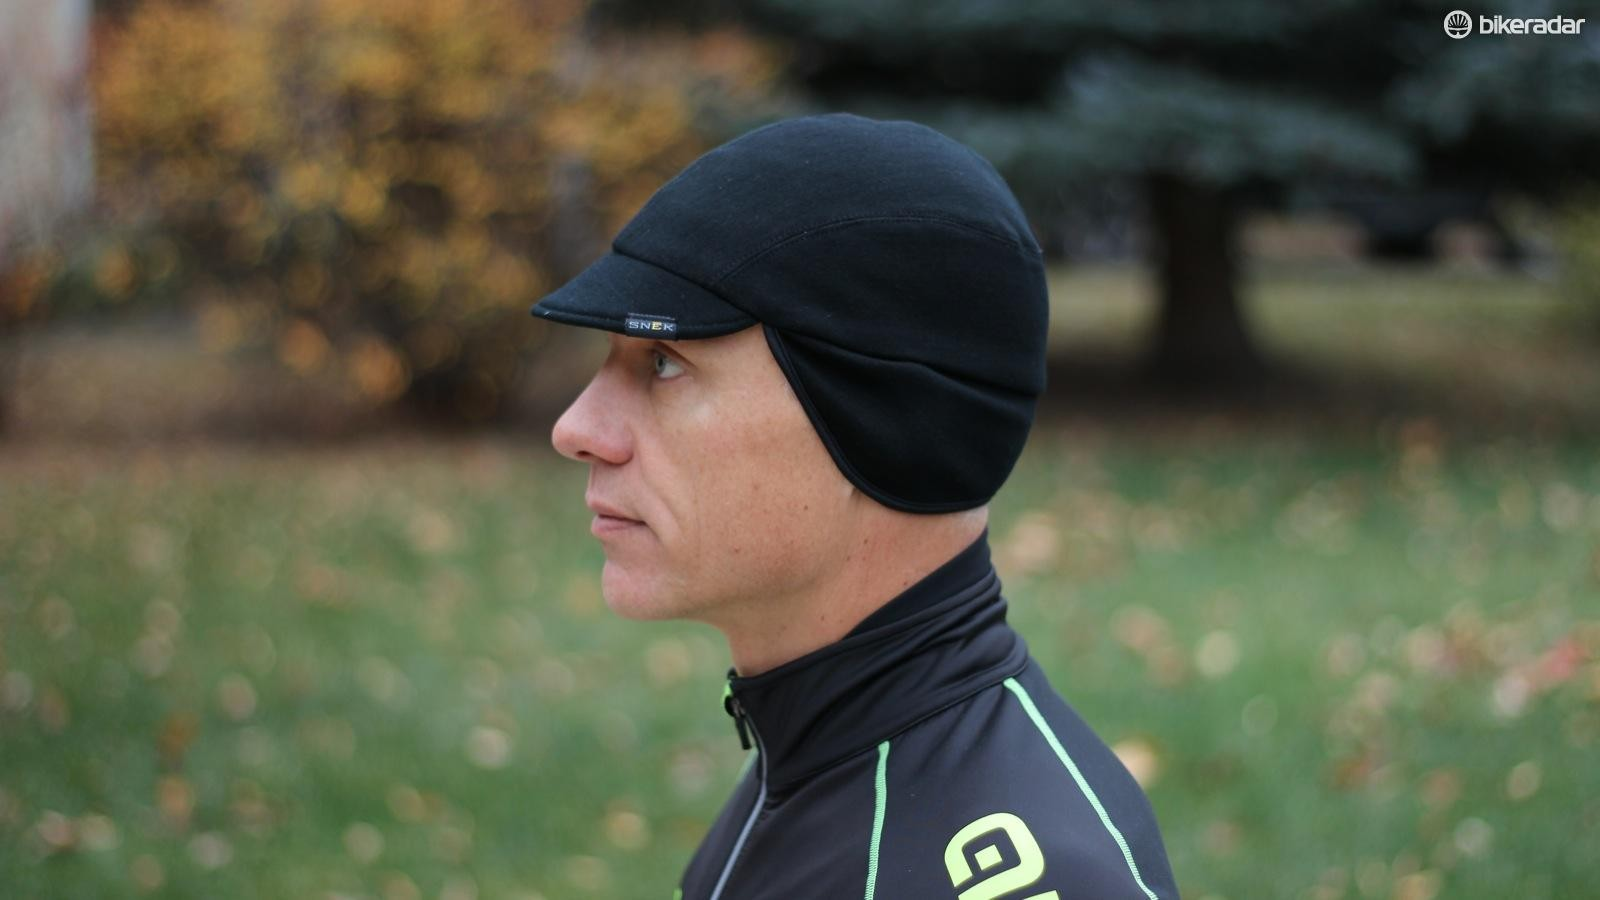 The Snek Merino Winter Cap is a well executed version of an old standard. We like the long ear flaps that don't ride up